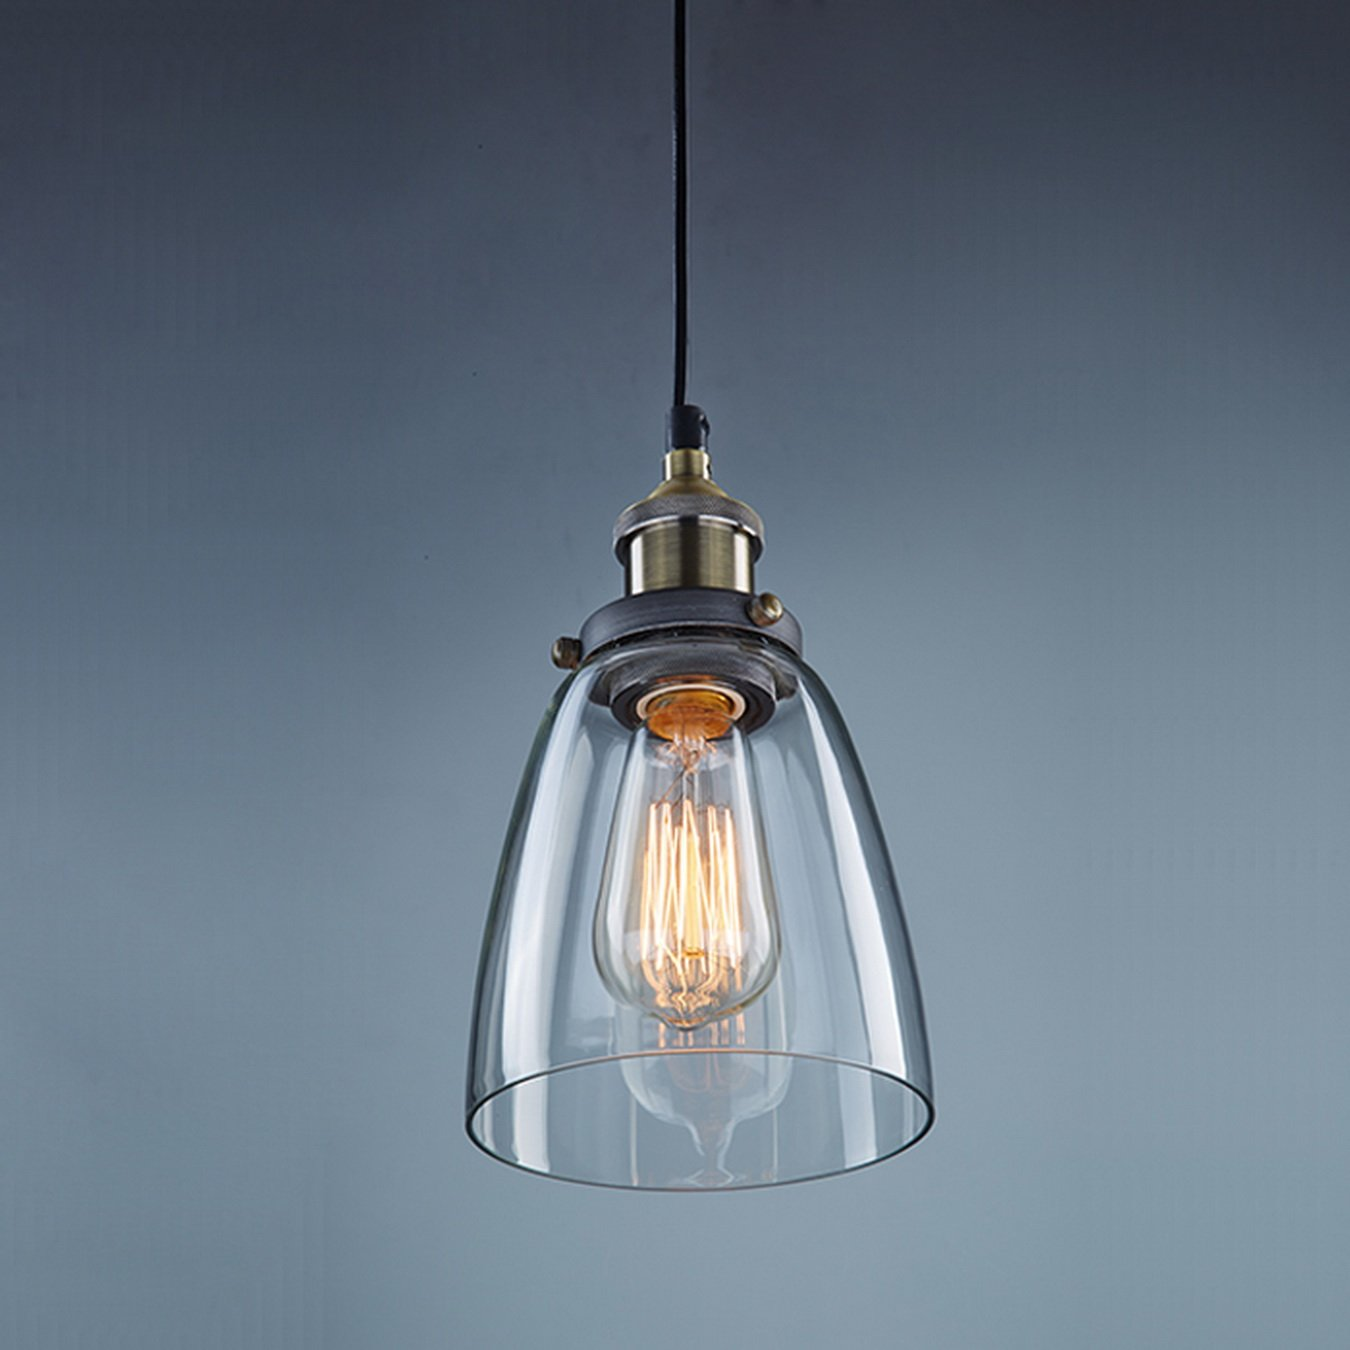 pendant glass amazon edison uk industrial lighting ceiling dp vintage light claxy co